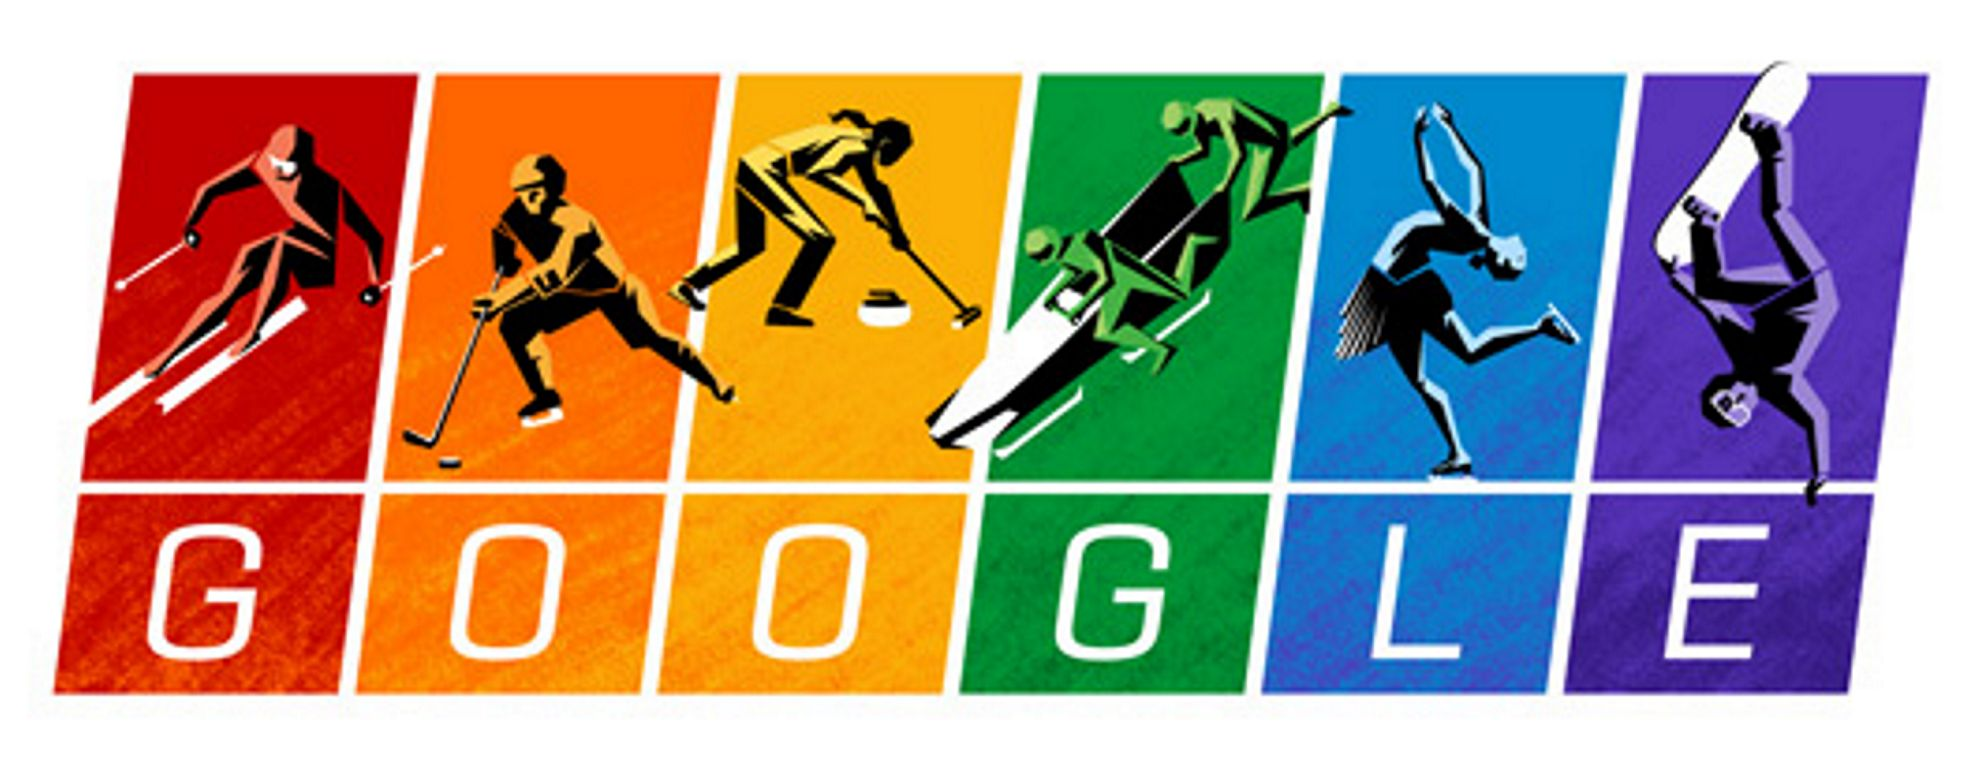 Olympic_Charter_Google_Doodle